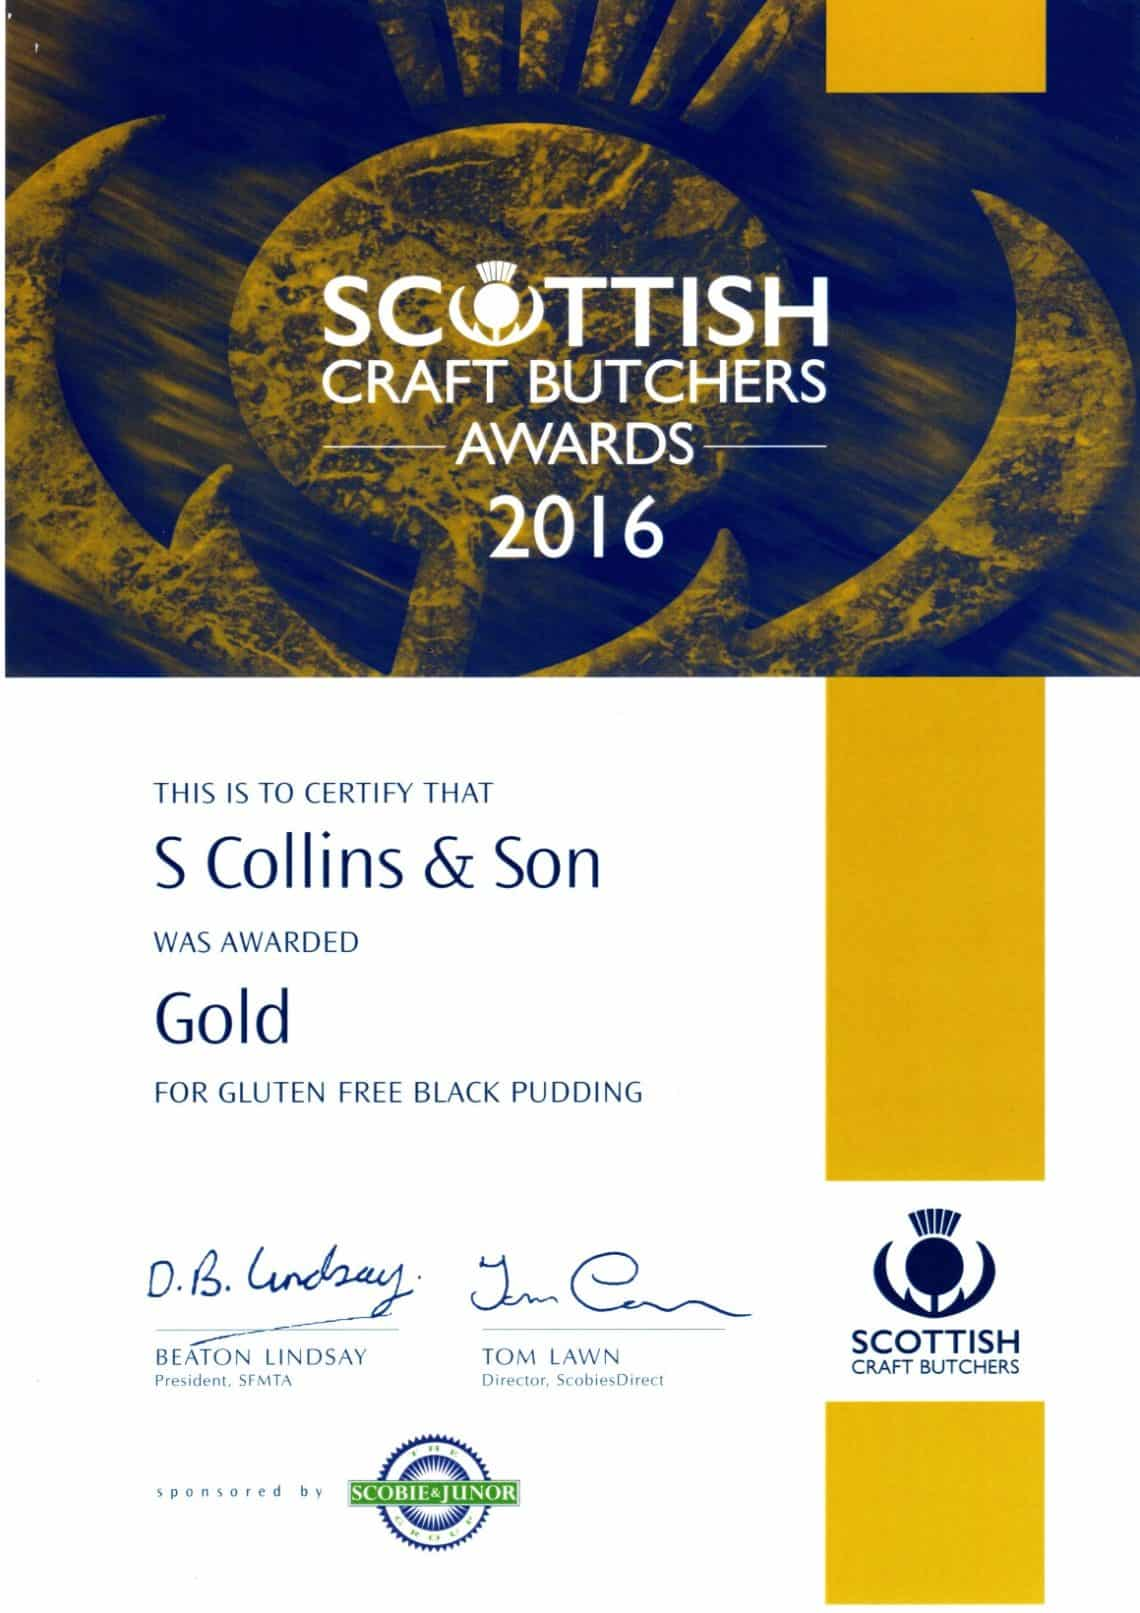 Scottish Craft Butchers 2016: Gluten Free Black Pudding